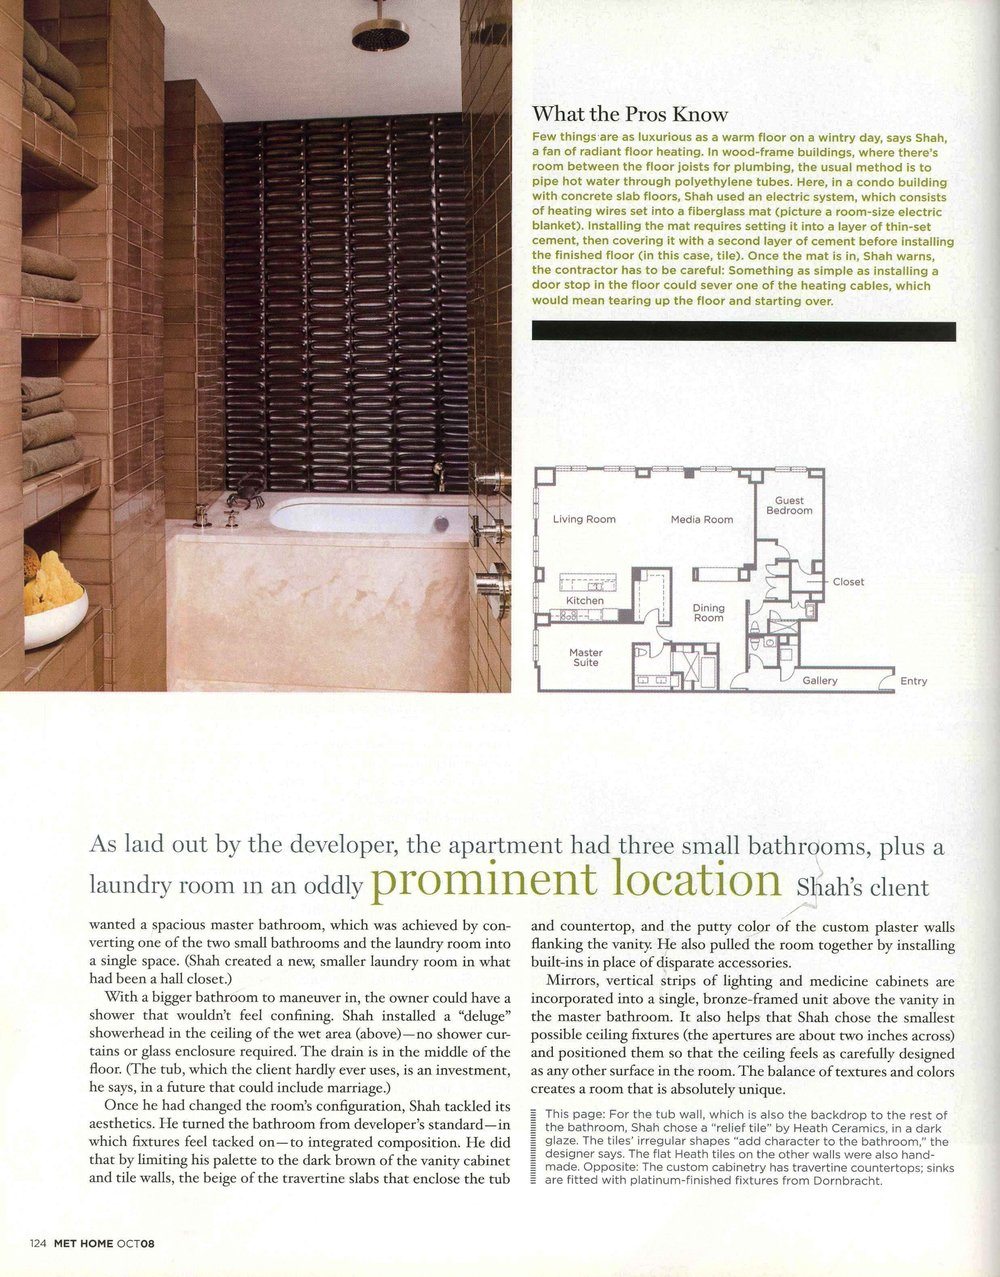 Met Home_Oct 08_Full Article 2_Page_08.jpg